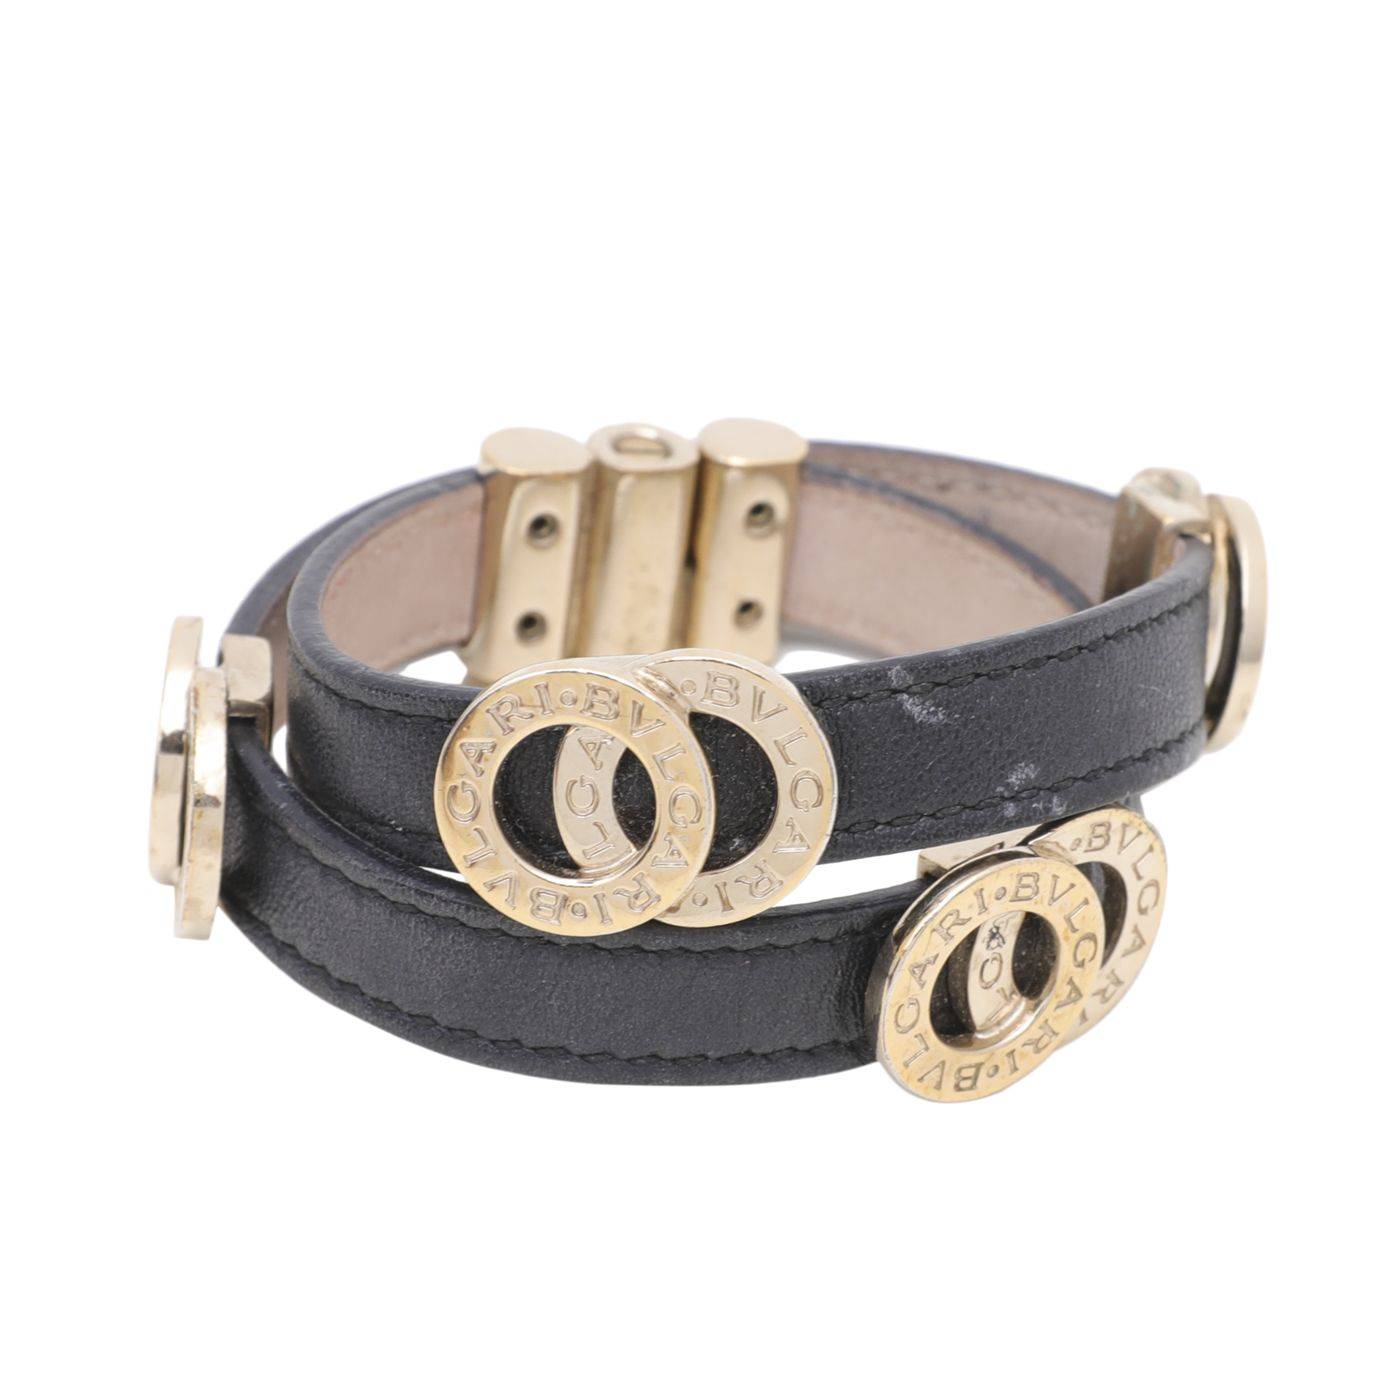 Bvlgari Black Double Coiled Bracelet